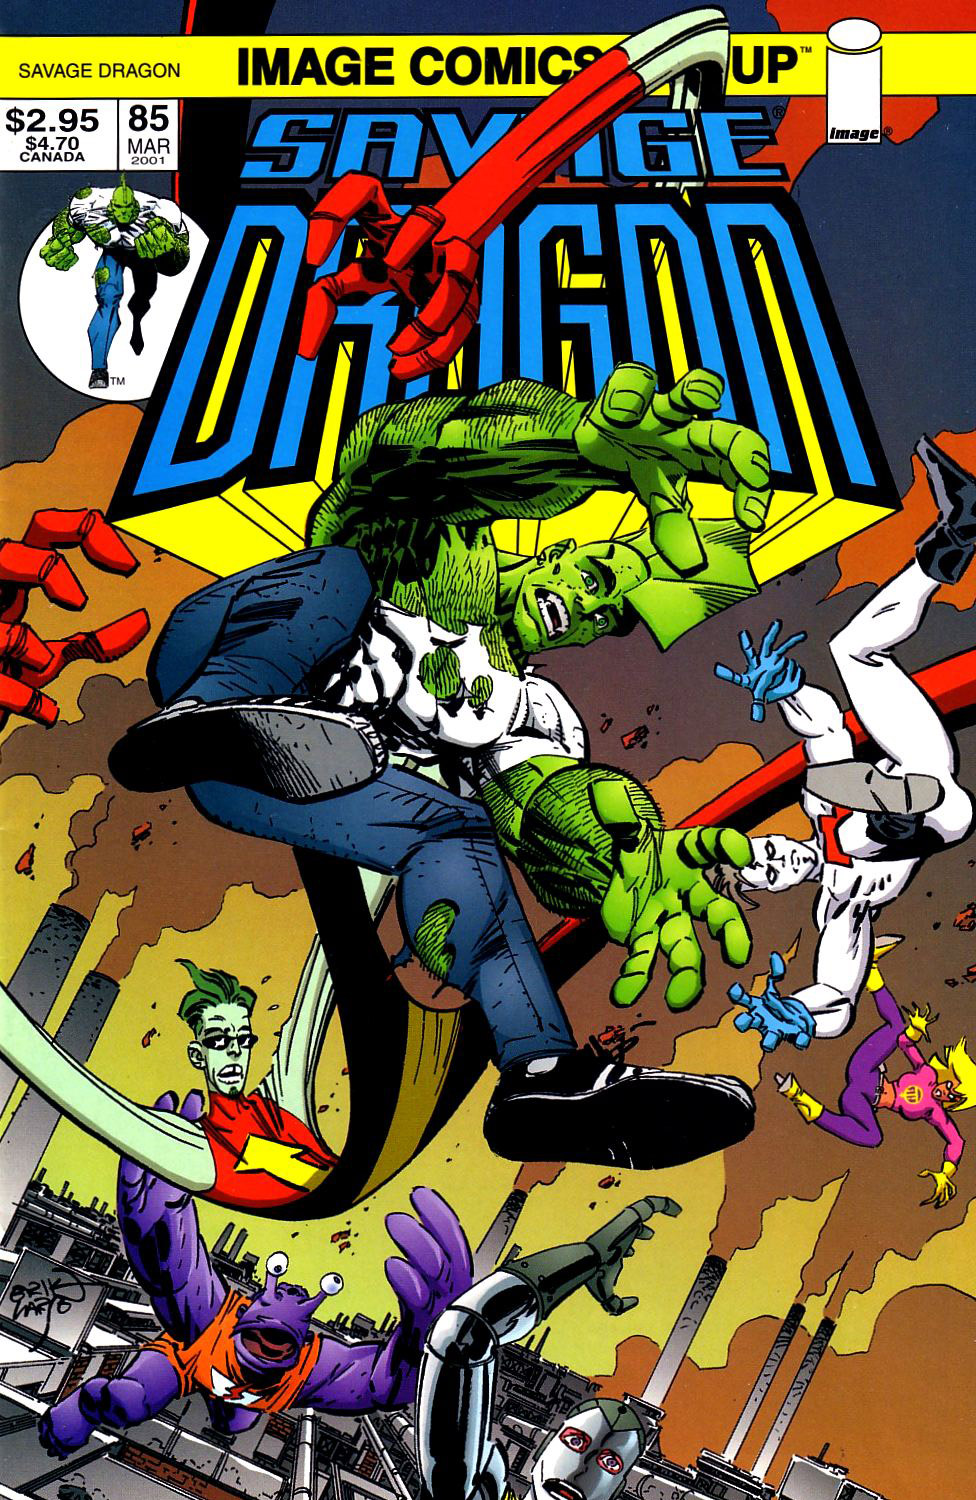 Cover Savage Dragon Vol.2 #85